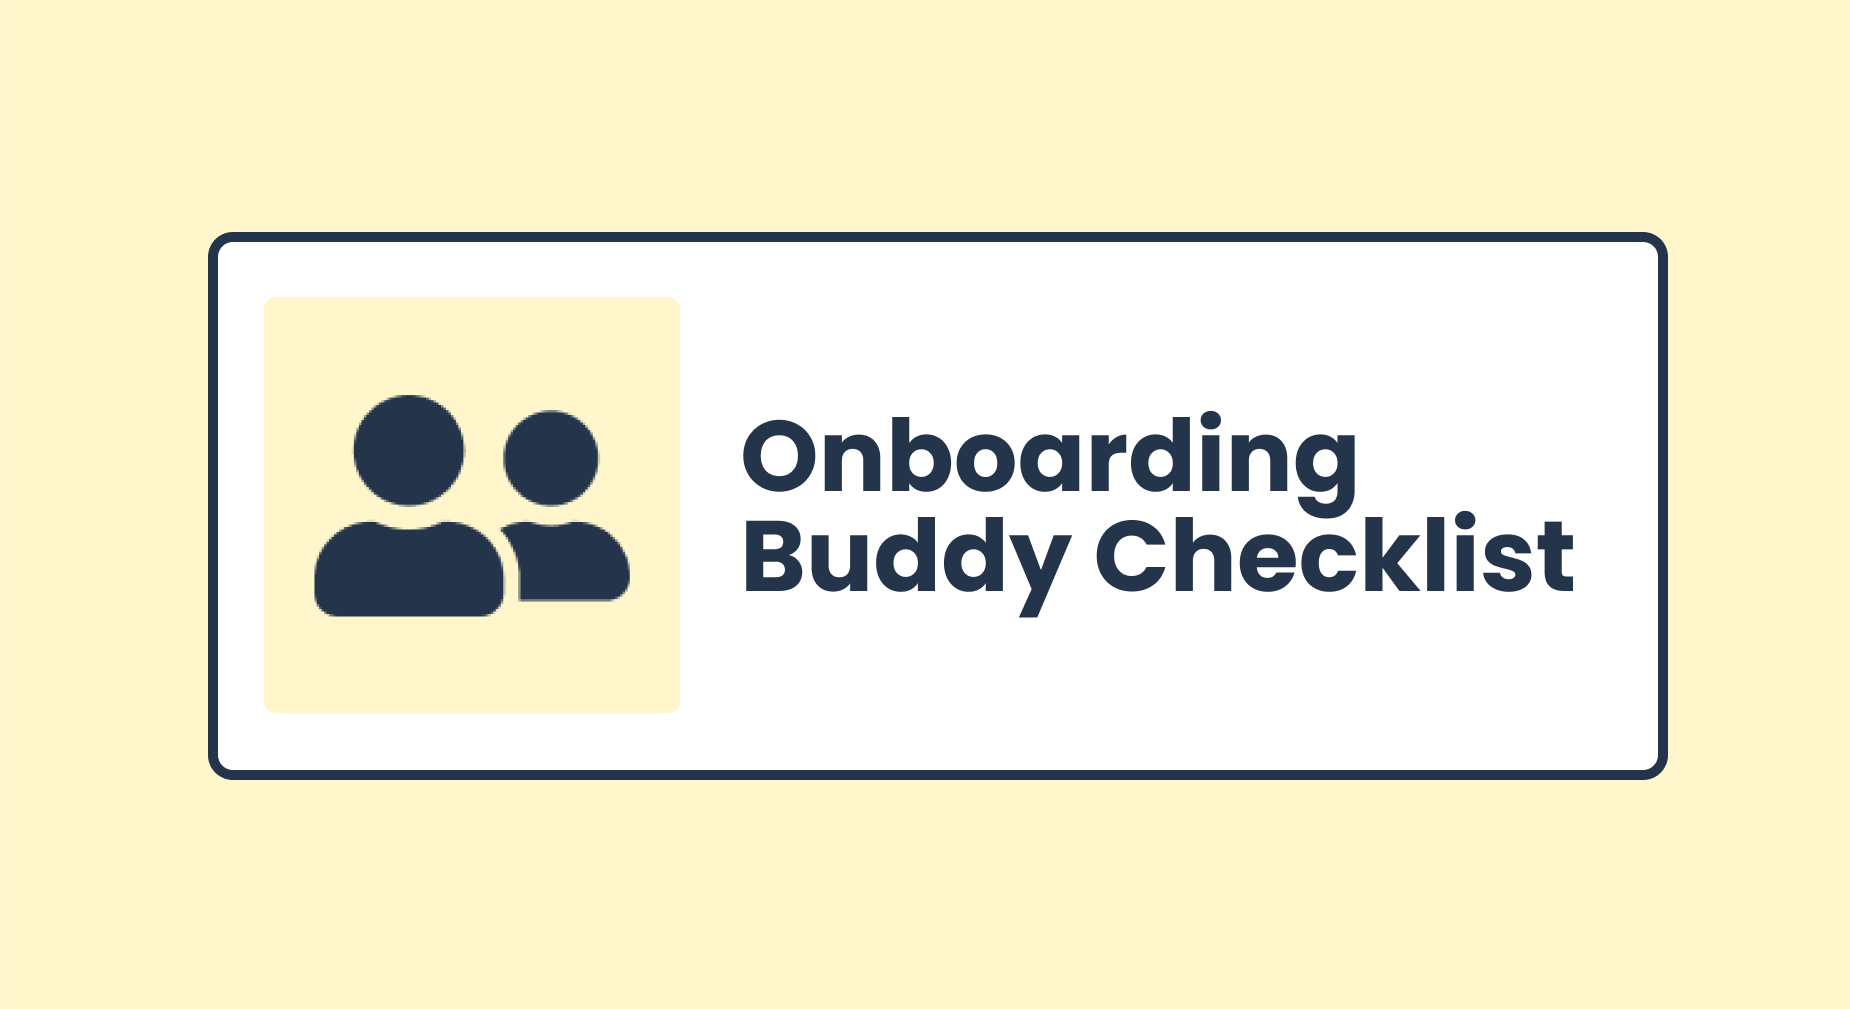 How to build an onboarding buddy program to give your new hires off to a strong start from day one on the job.